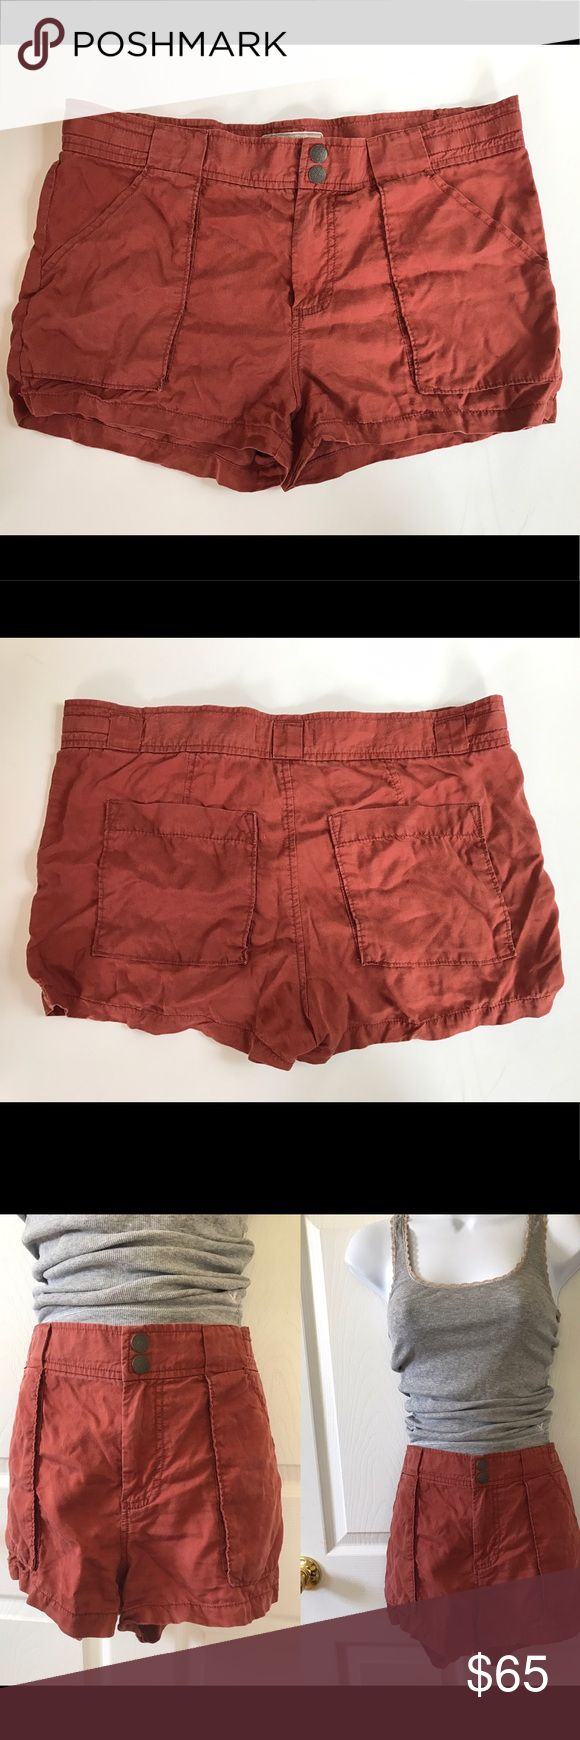 """Free People Rustic Orange Red Military Shorts Super cute lightweight Rustic orange/ red military shorts by free People. Though the style is meant to be somewhat distressed looking, there are some minor signs of wear. However, they are invisible unless you're looking for them. See pictures. These are in great shape and have so much life left I them. And they're lightweight which makes them perfect for summer. No rips, stains, tears, imperfections really,etc. 100% tencel.  Waist: 17.5"""" Rise…"""